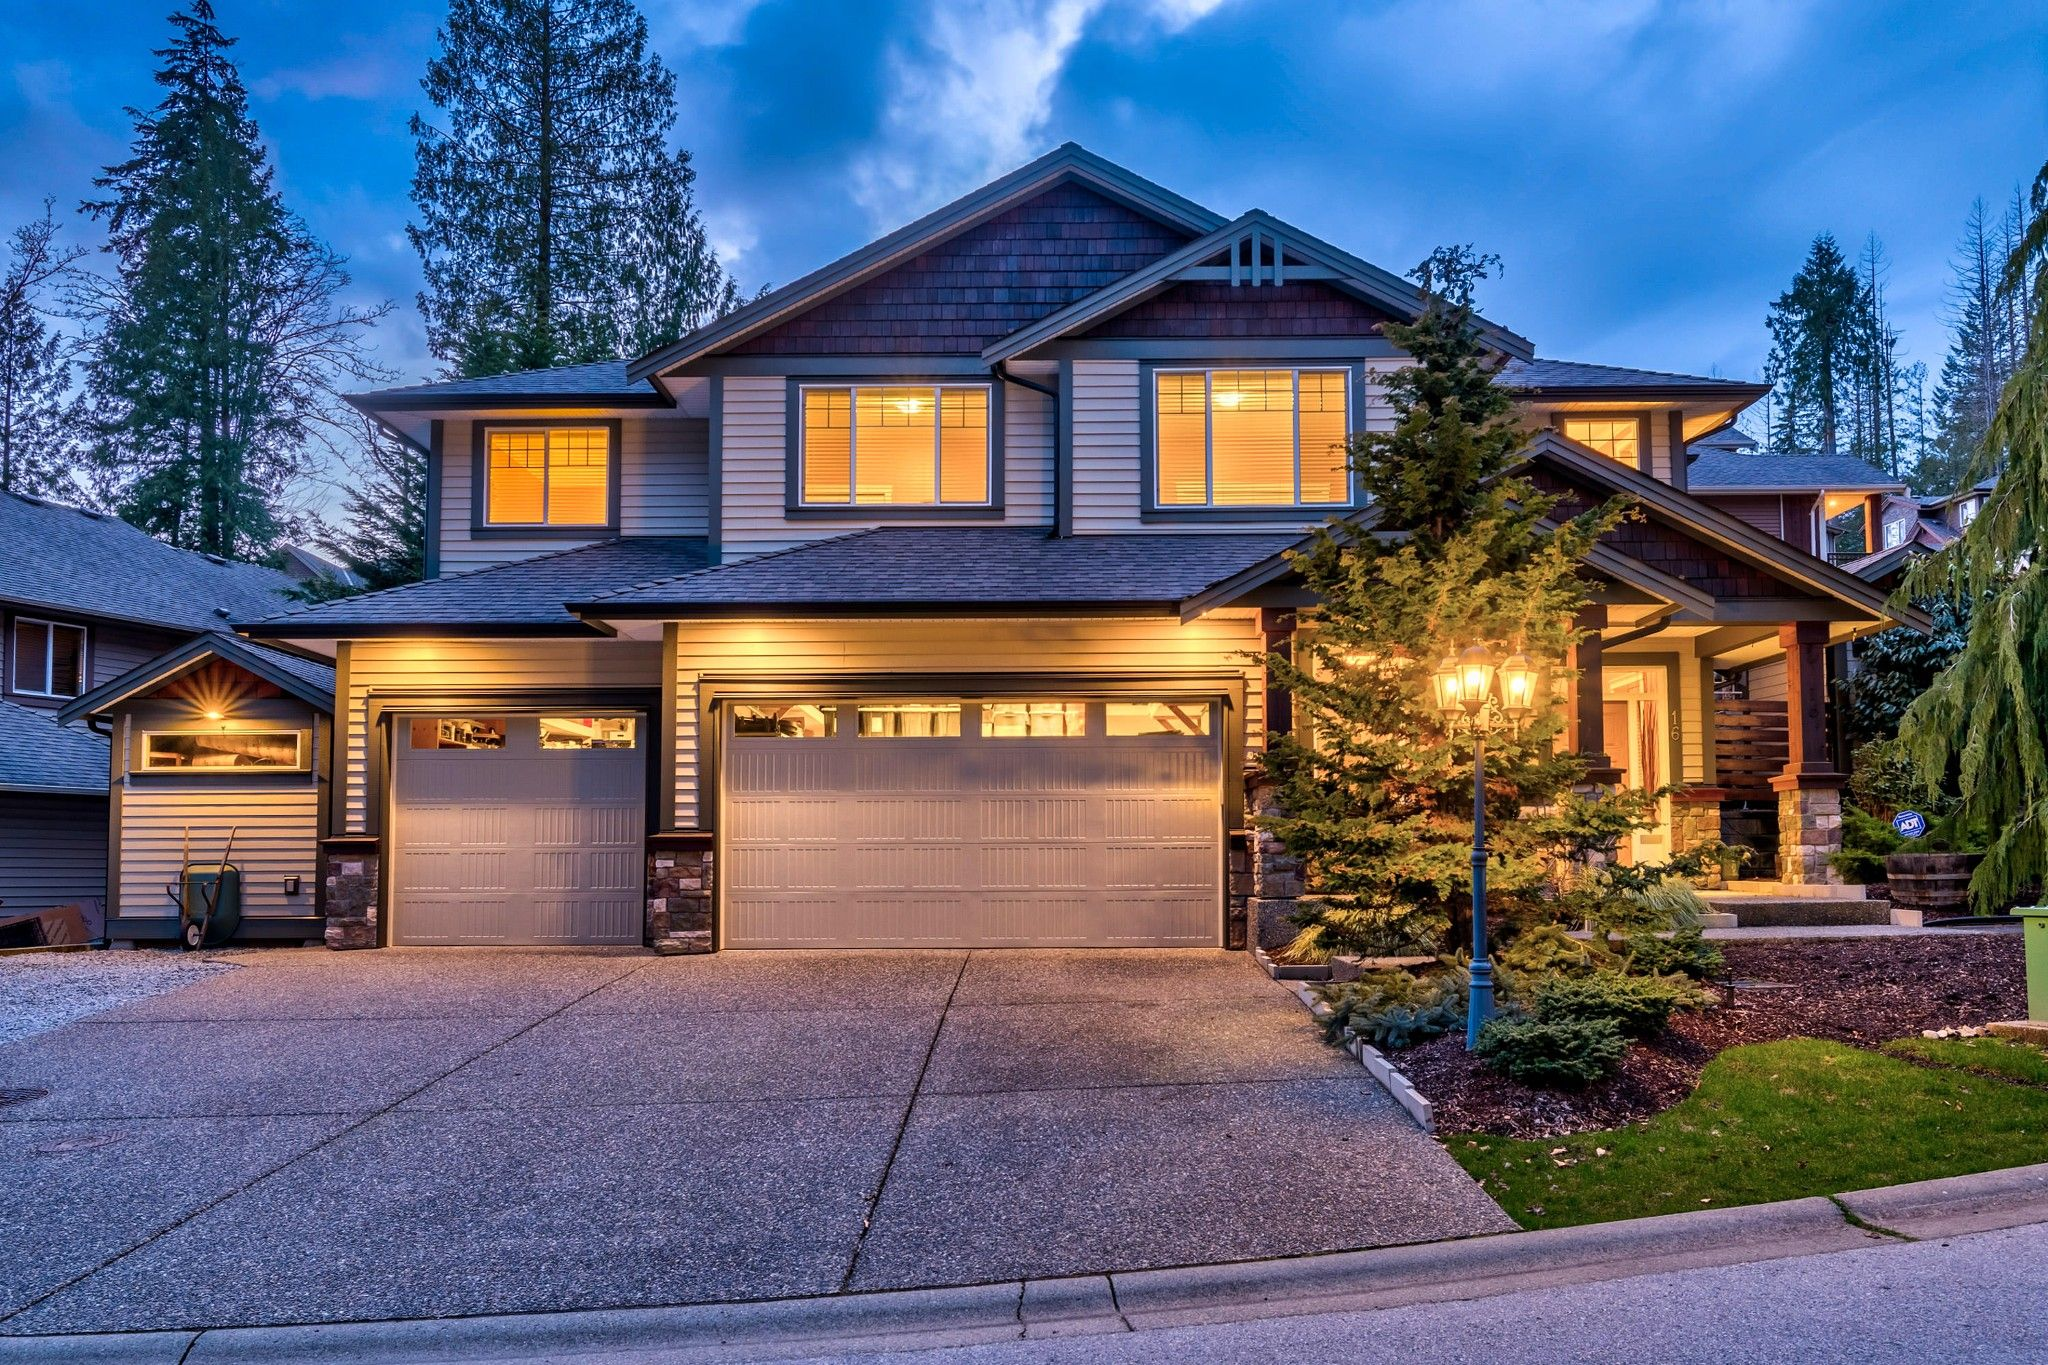 Photo 3: Photos: 16 13210 SHOESMITH CRESCENT in Maple Ridge: Silver Valley House for sale : MLS®# R2448043